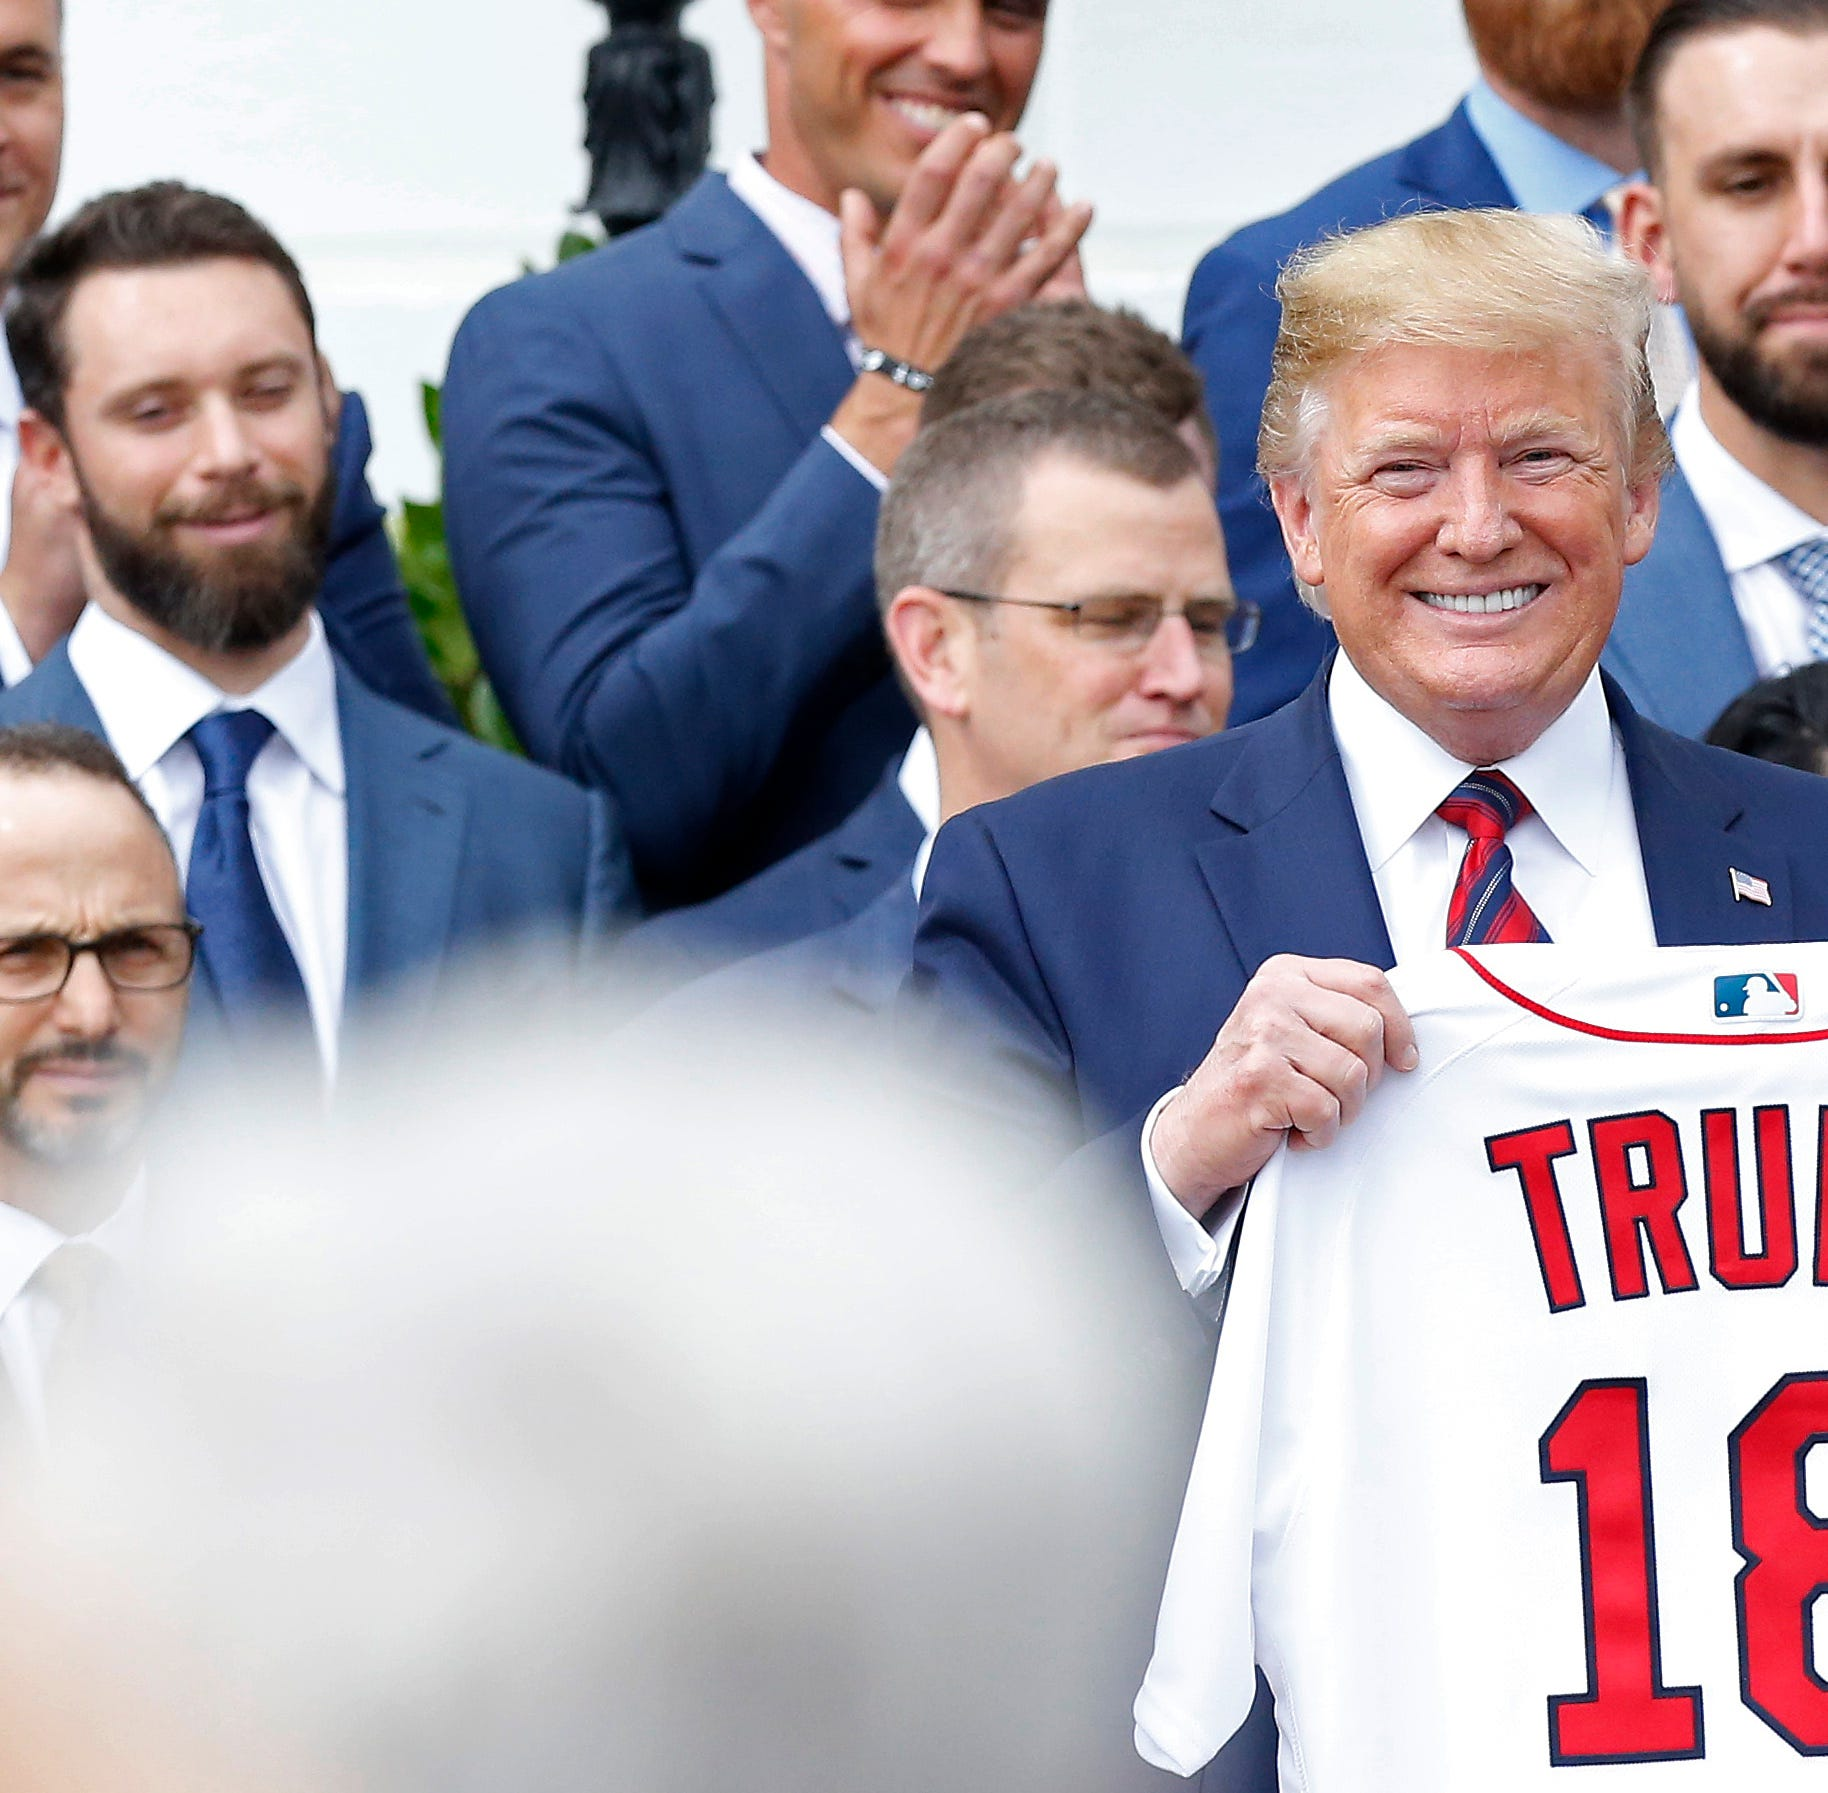 Did Donald Trump honor the Red Sox or the 'white' Sox?